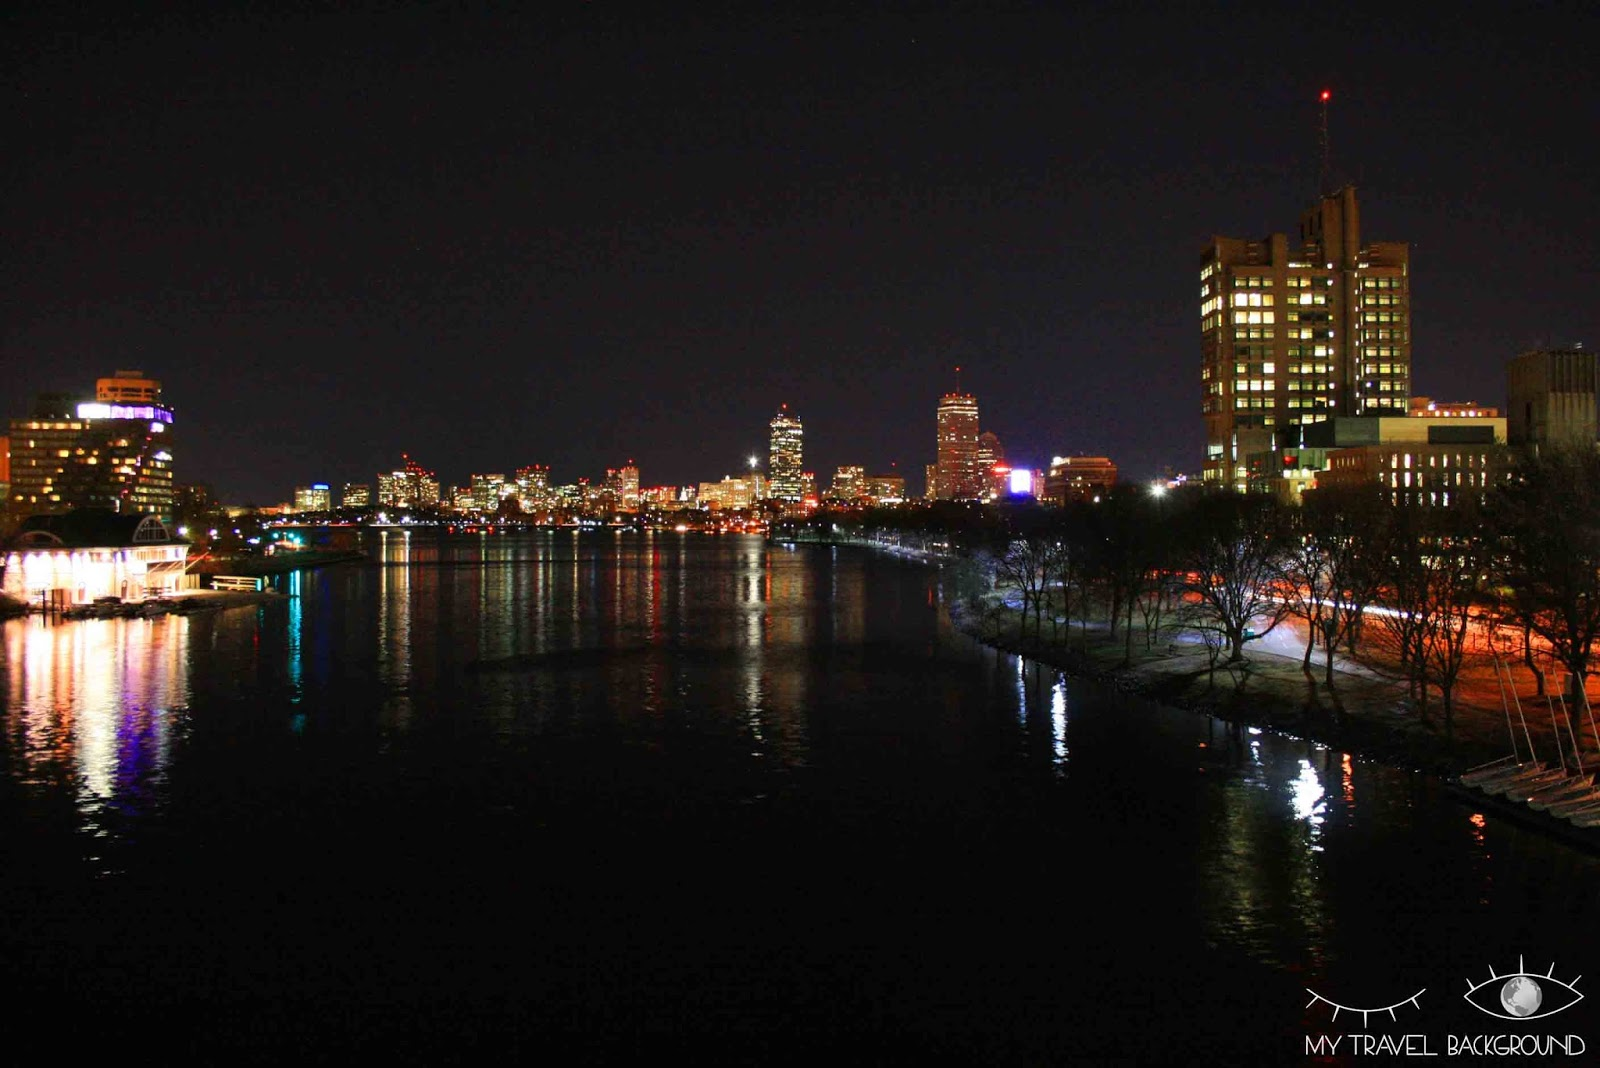 My Travel Background : nuit sur Boston